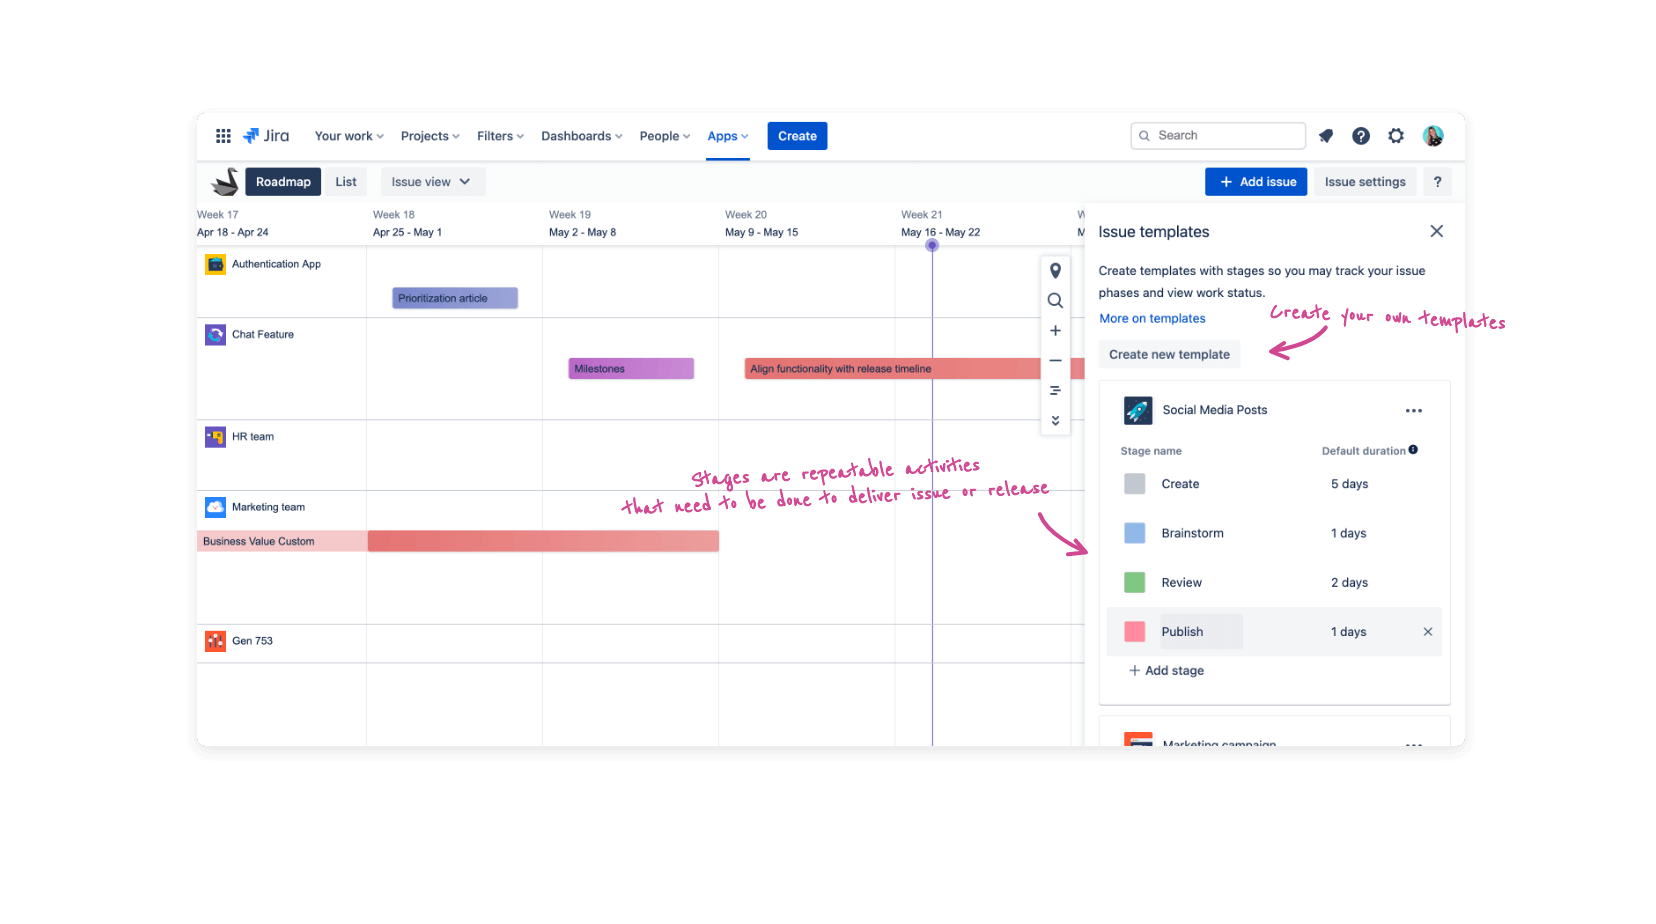 Swanly roadmap - scheduling and managing time in Jira projects